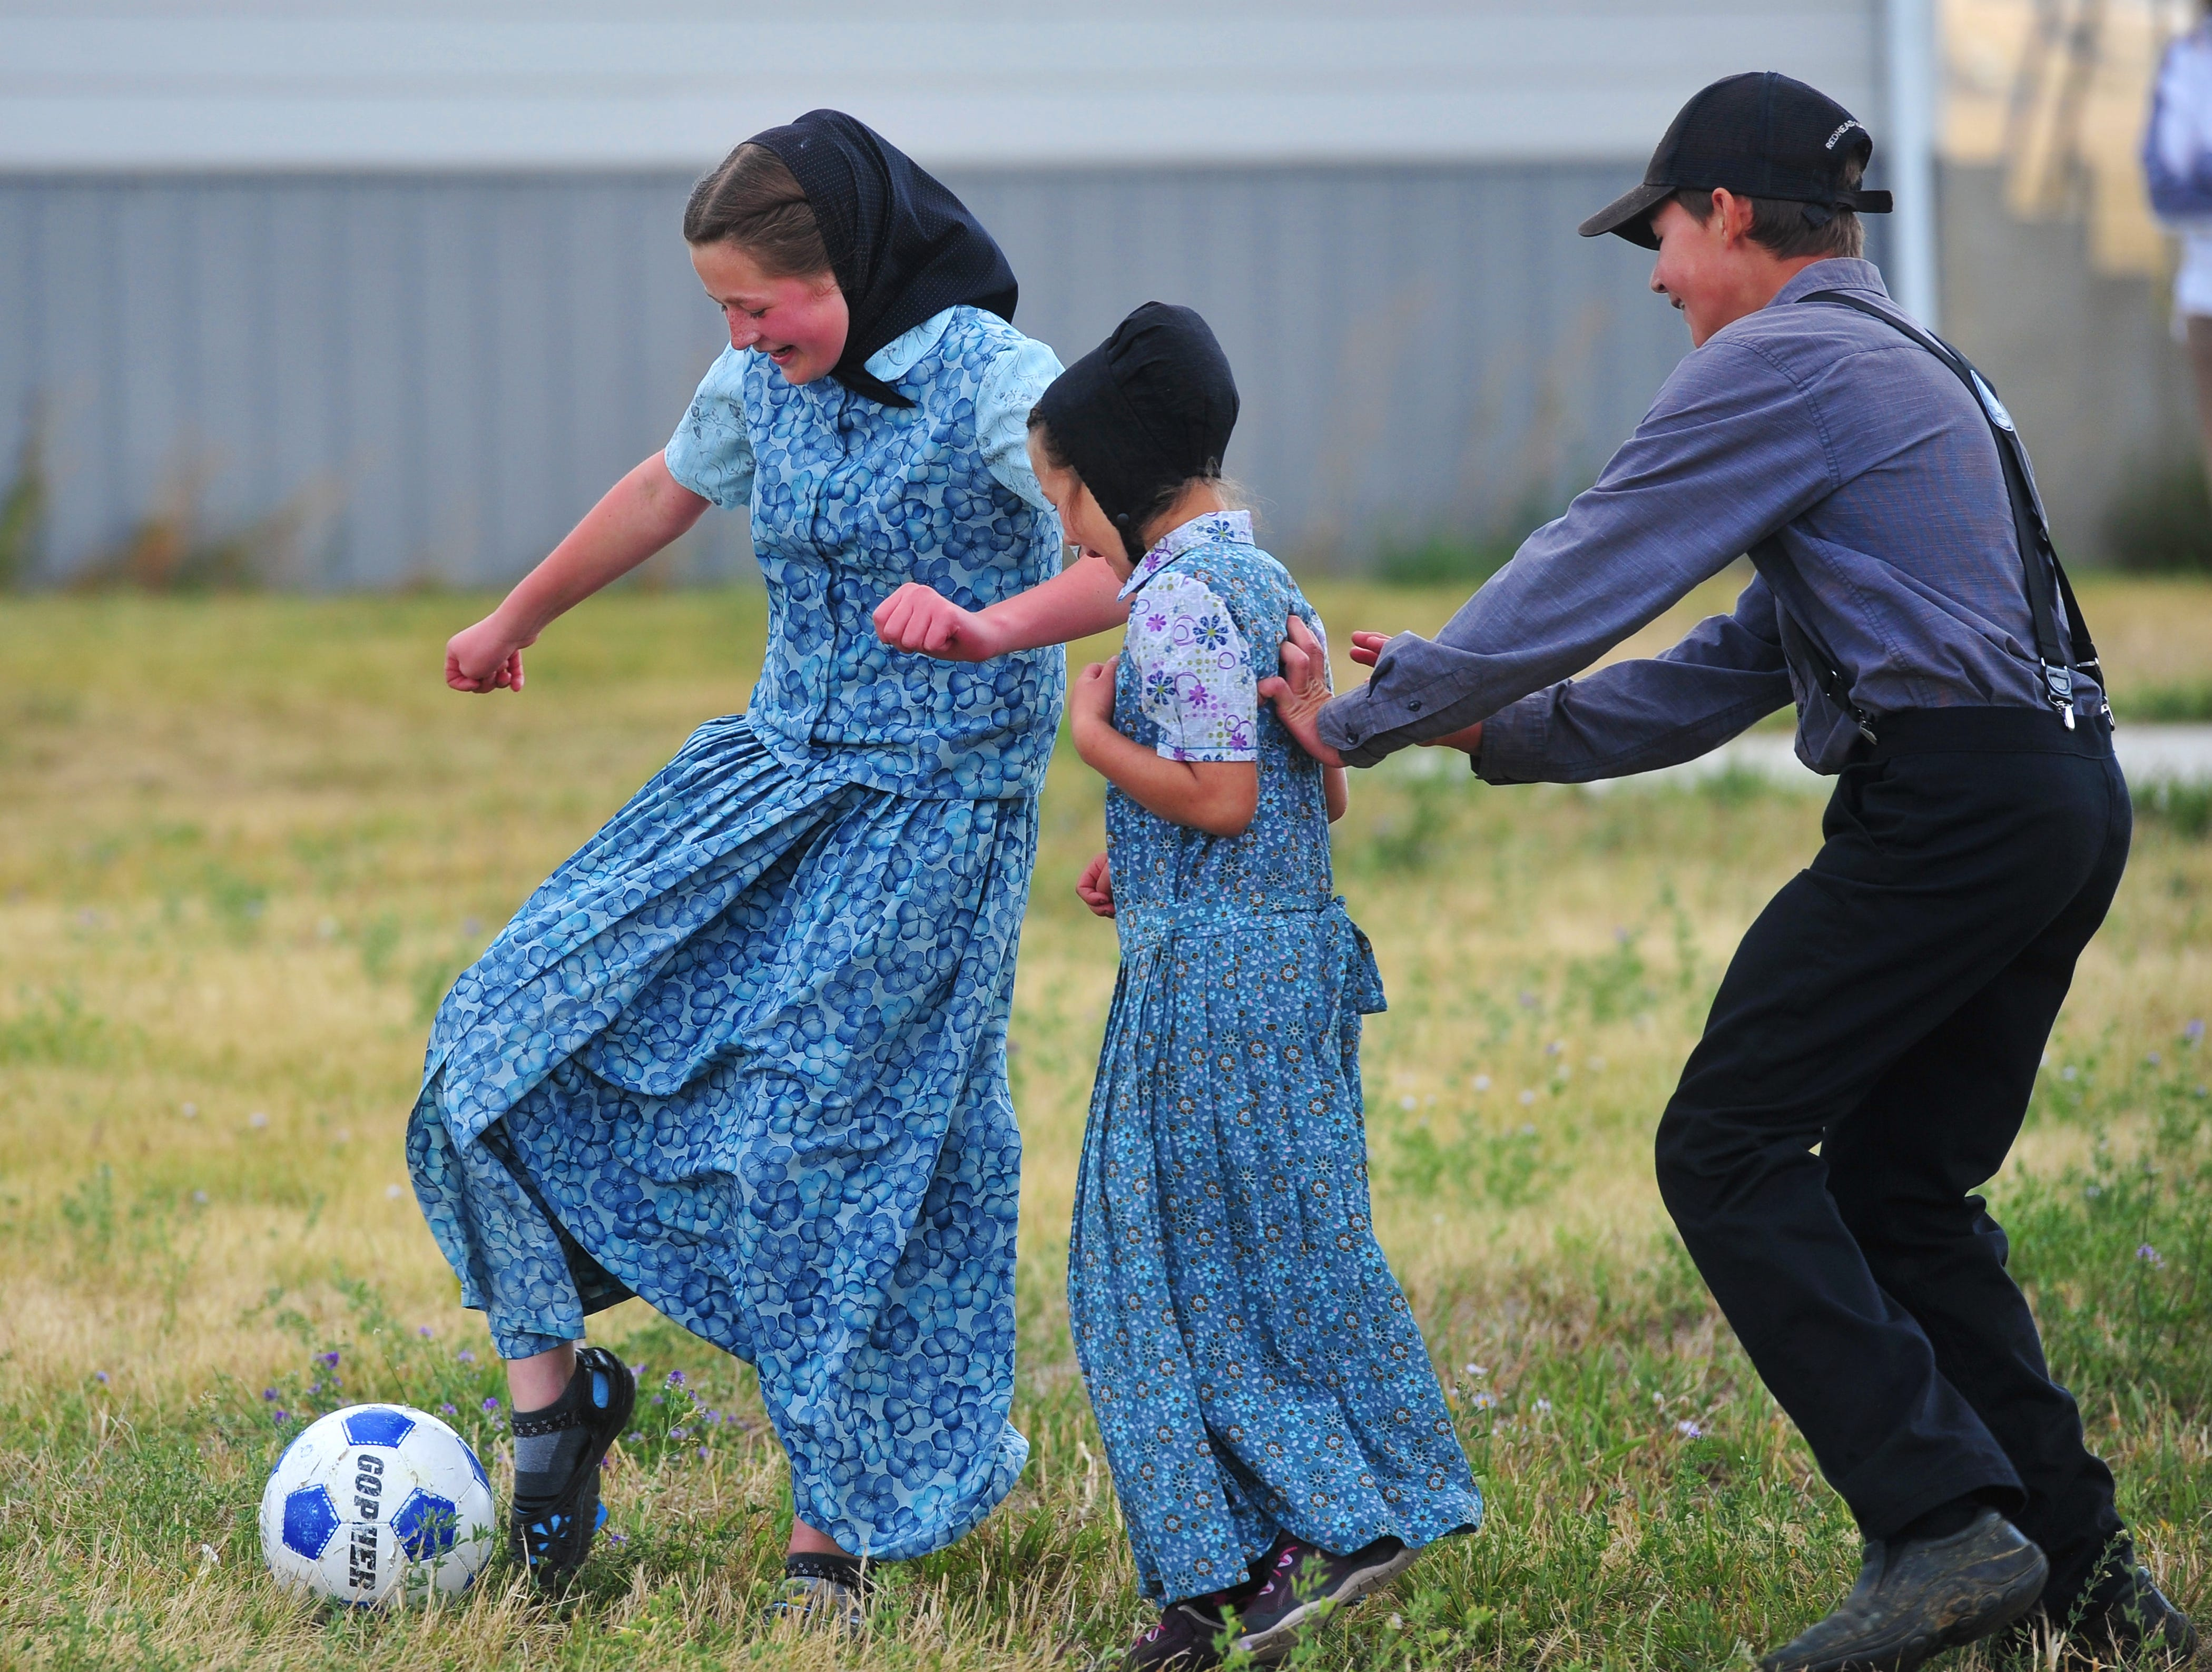 Geena Stahl, left, Amber Stahl, center, and Austin Stahl play soccer at recess on Monday, Sept. 17, 2018.  Traci Manseau is a teaching veteran of 23 years and she has spent her entire career teaching in one room rural school houses.  She is currently teaching 15 students across seven different grade levels at the Deerfield Hutterite Colony in North Central Montana's Fergus County.